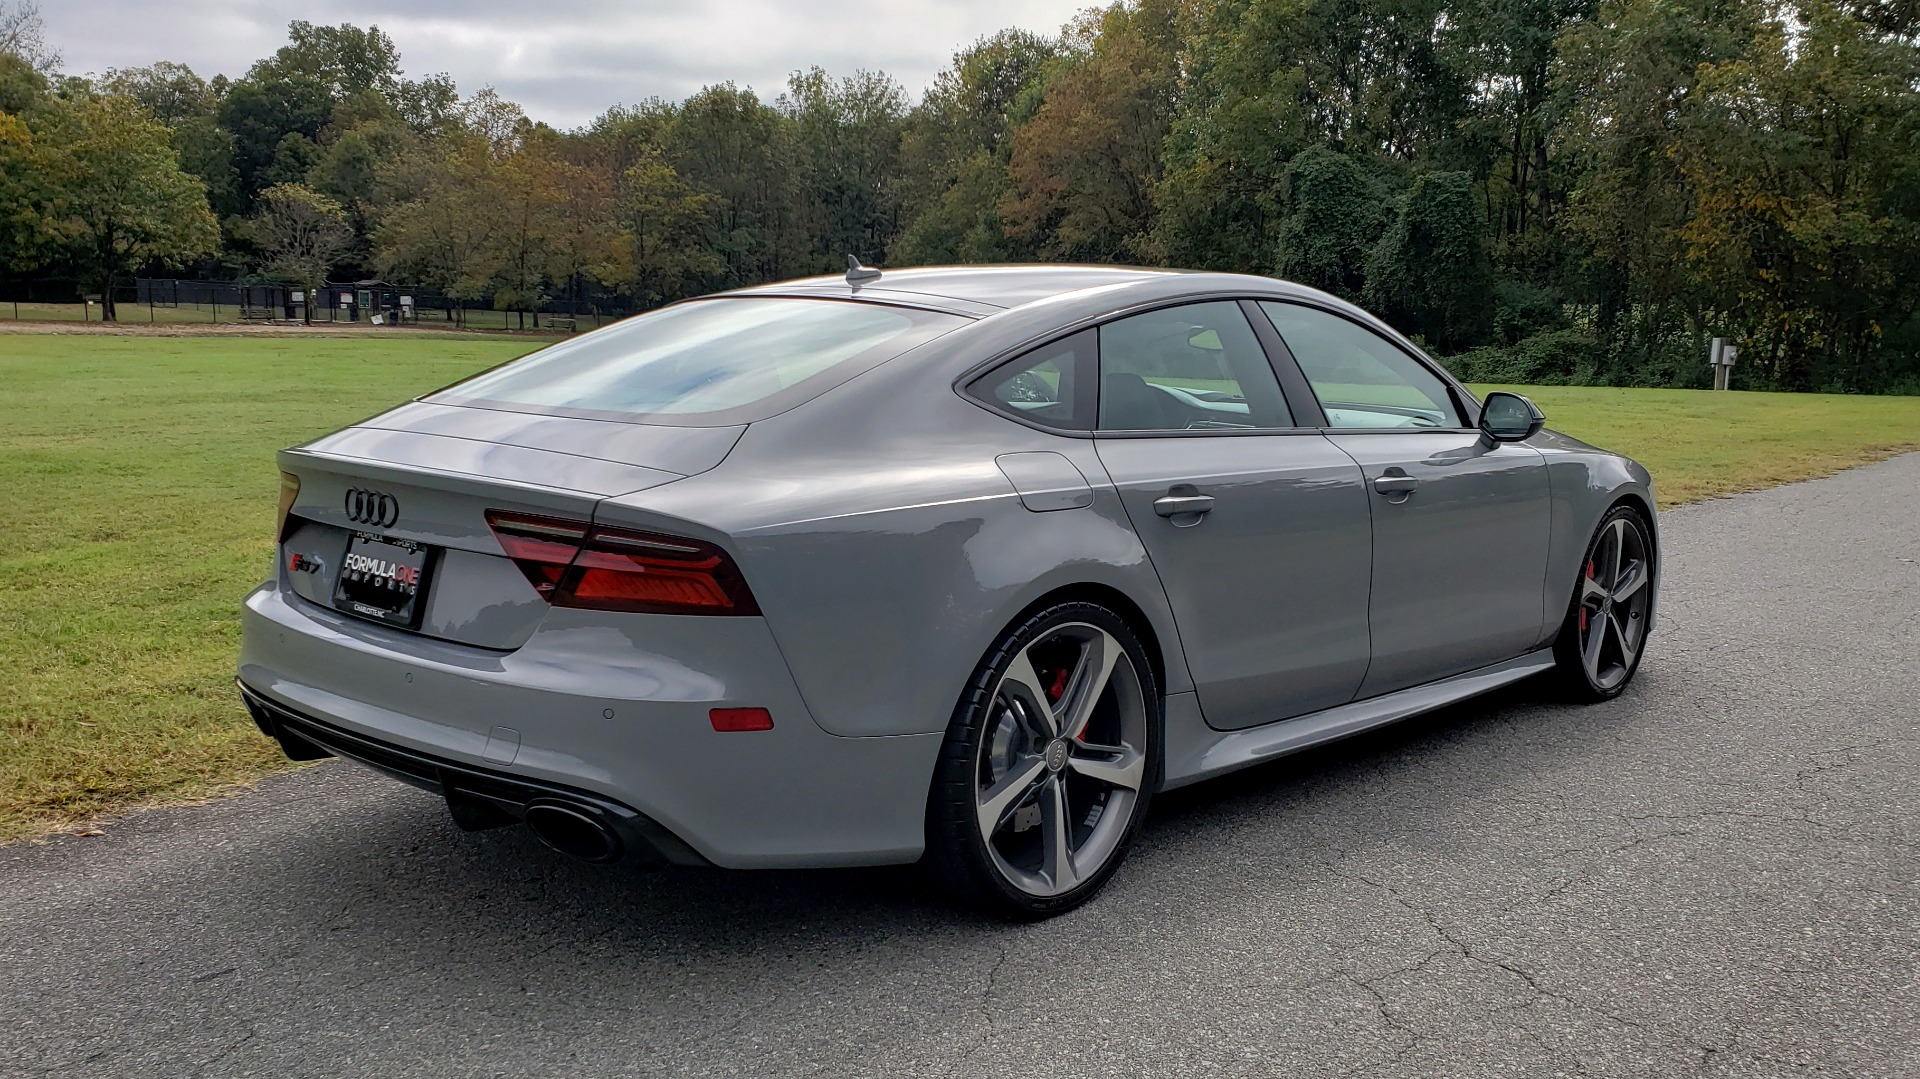 Used 2018 Audi RS 7 for sale Sold at Formula One Imports in Charlotte NC 28227 3